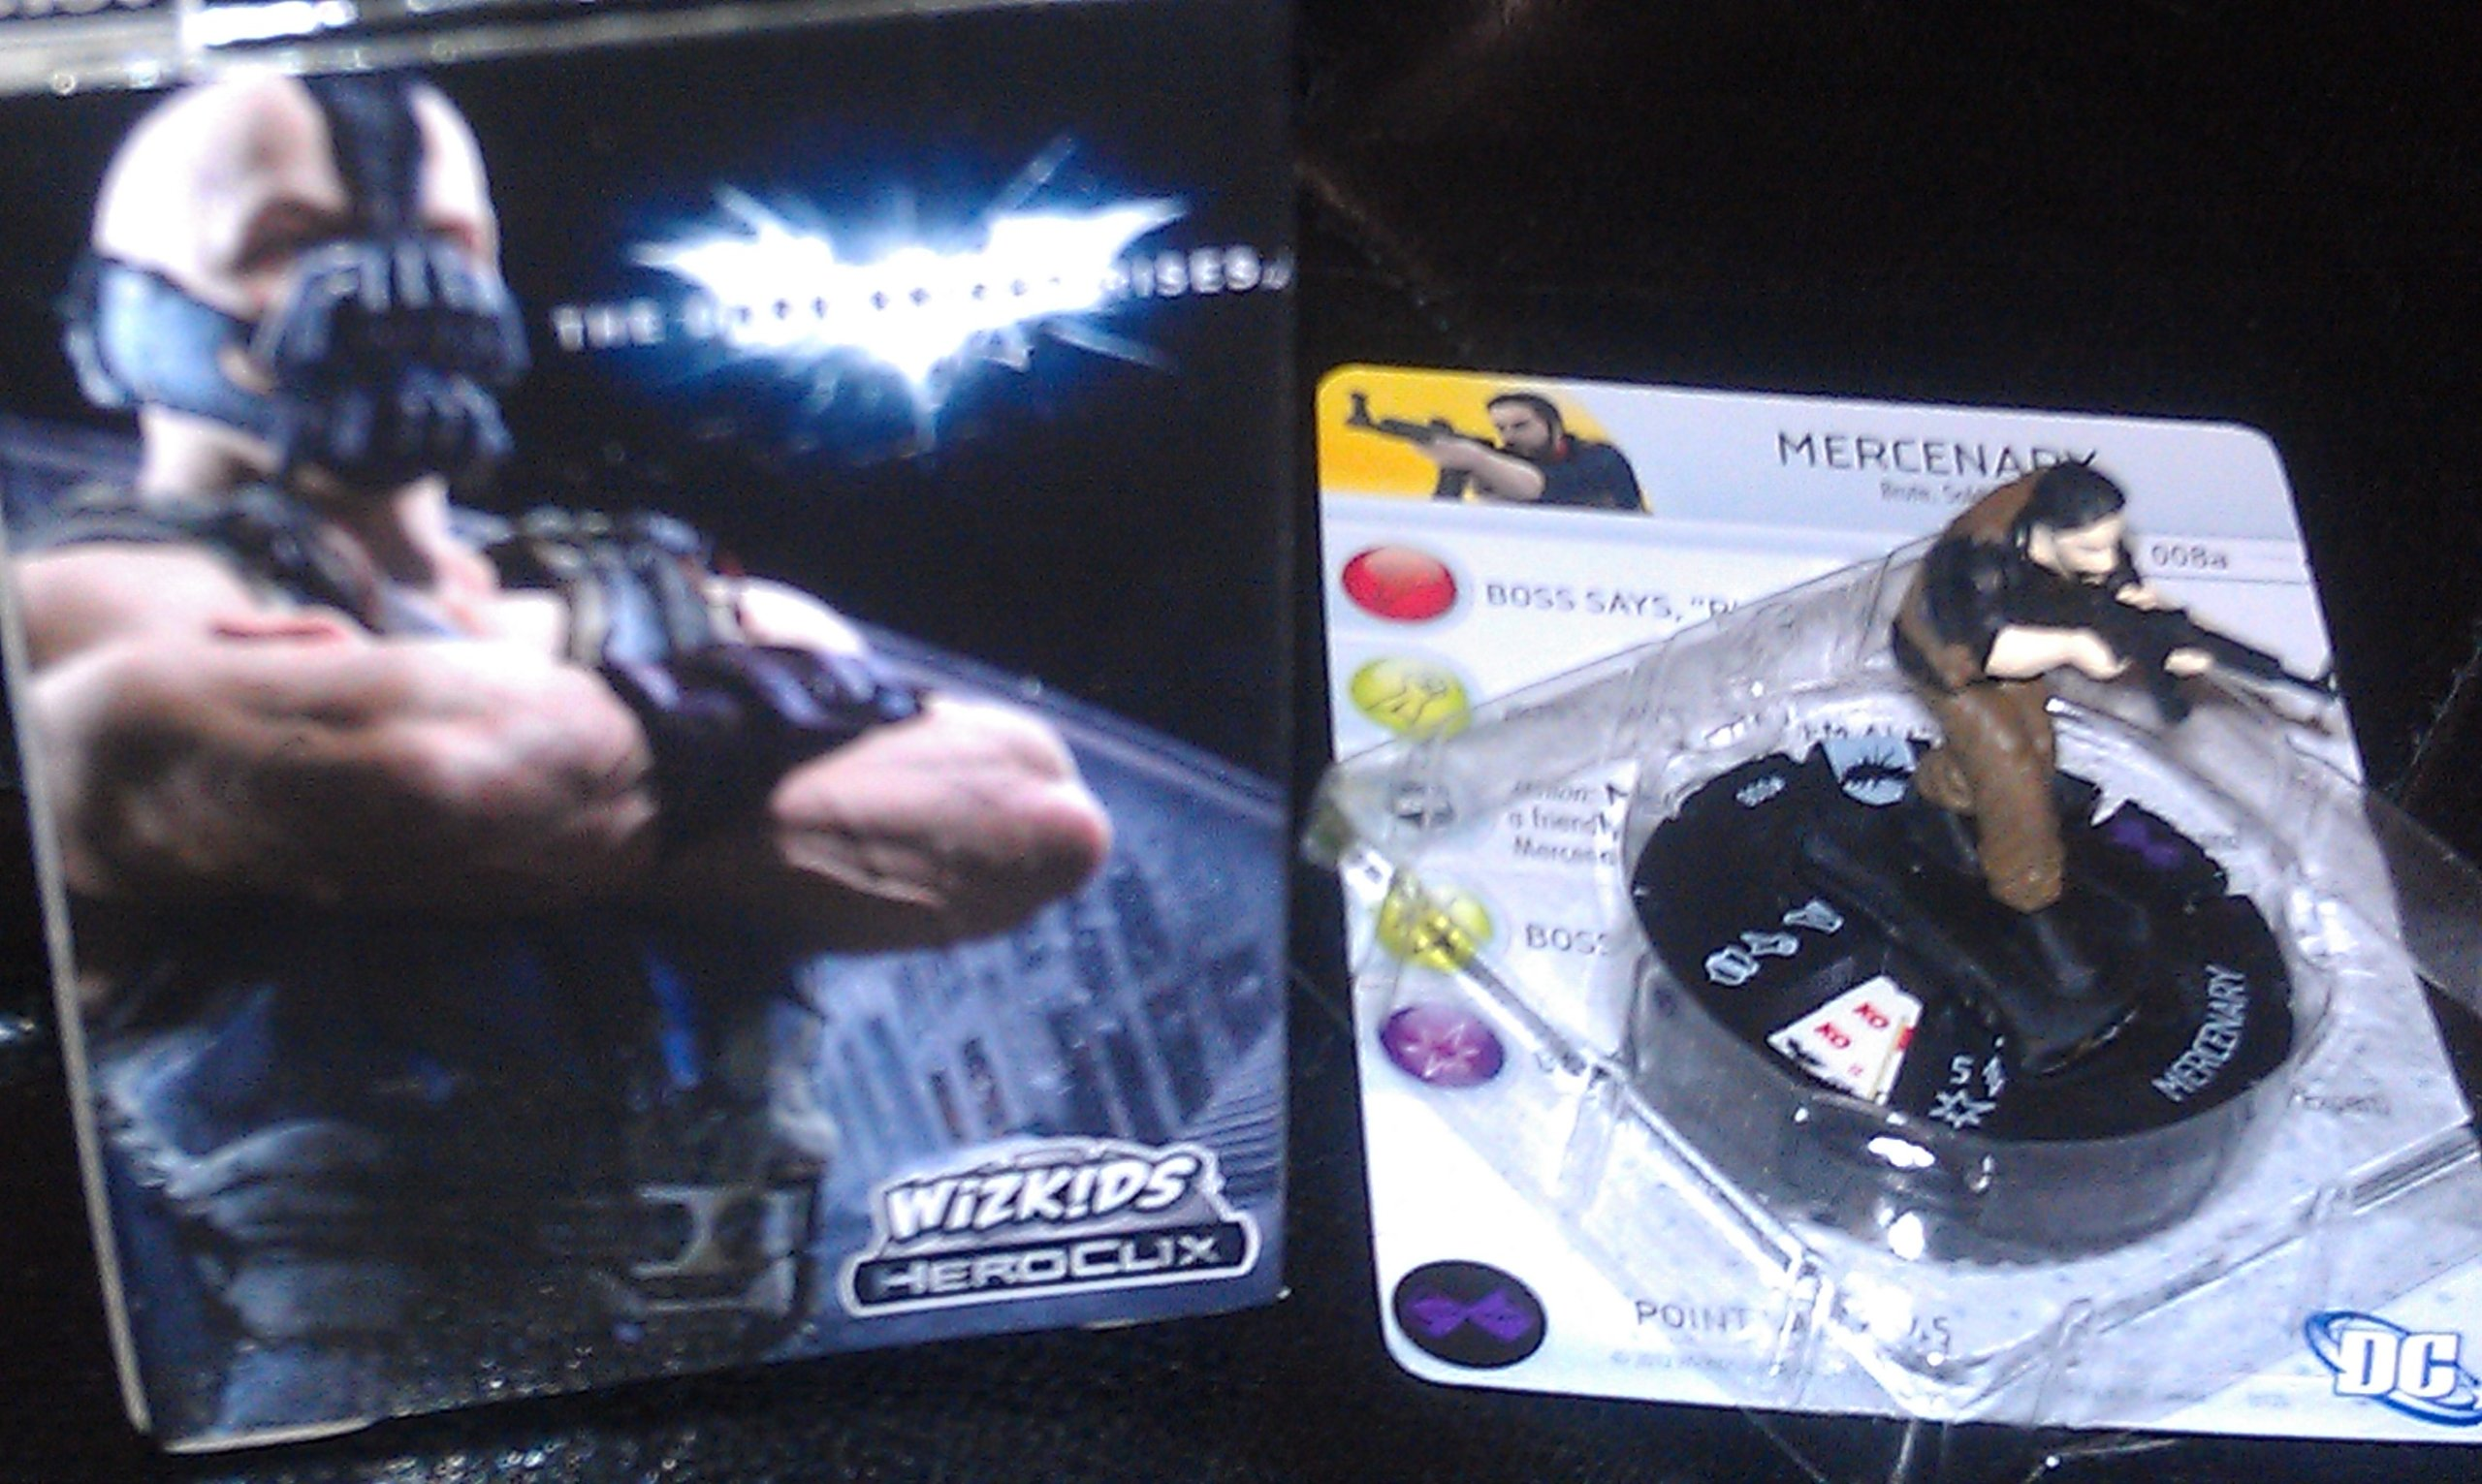 DC Heroclix Dark Knight Rises Counter top Mercenary